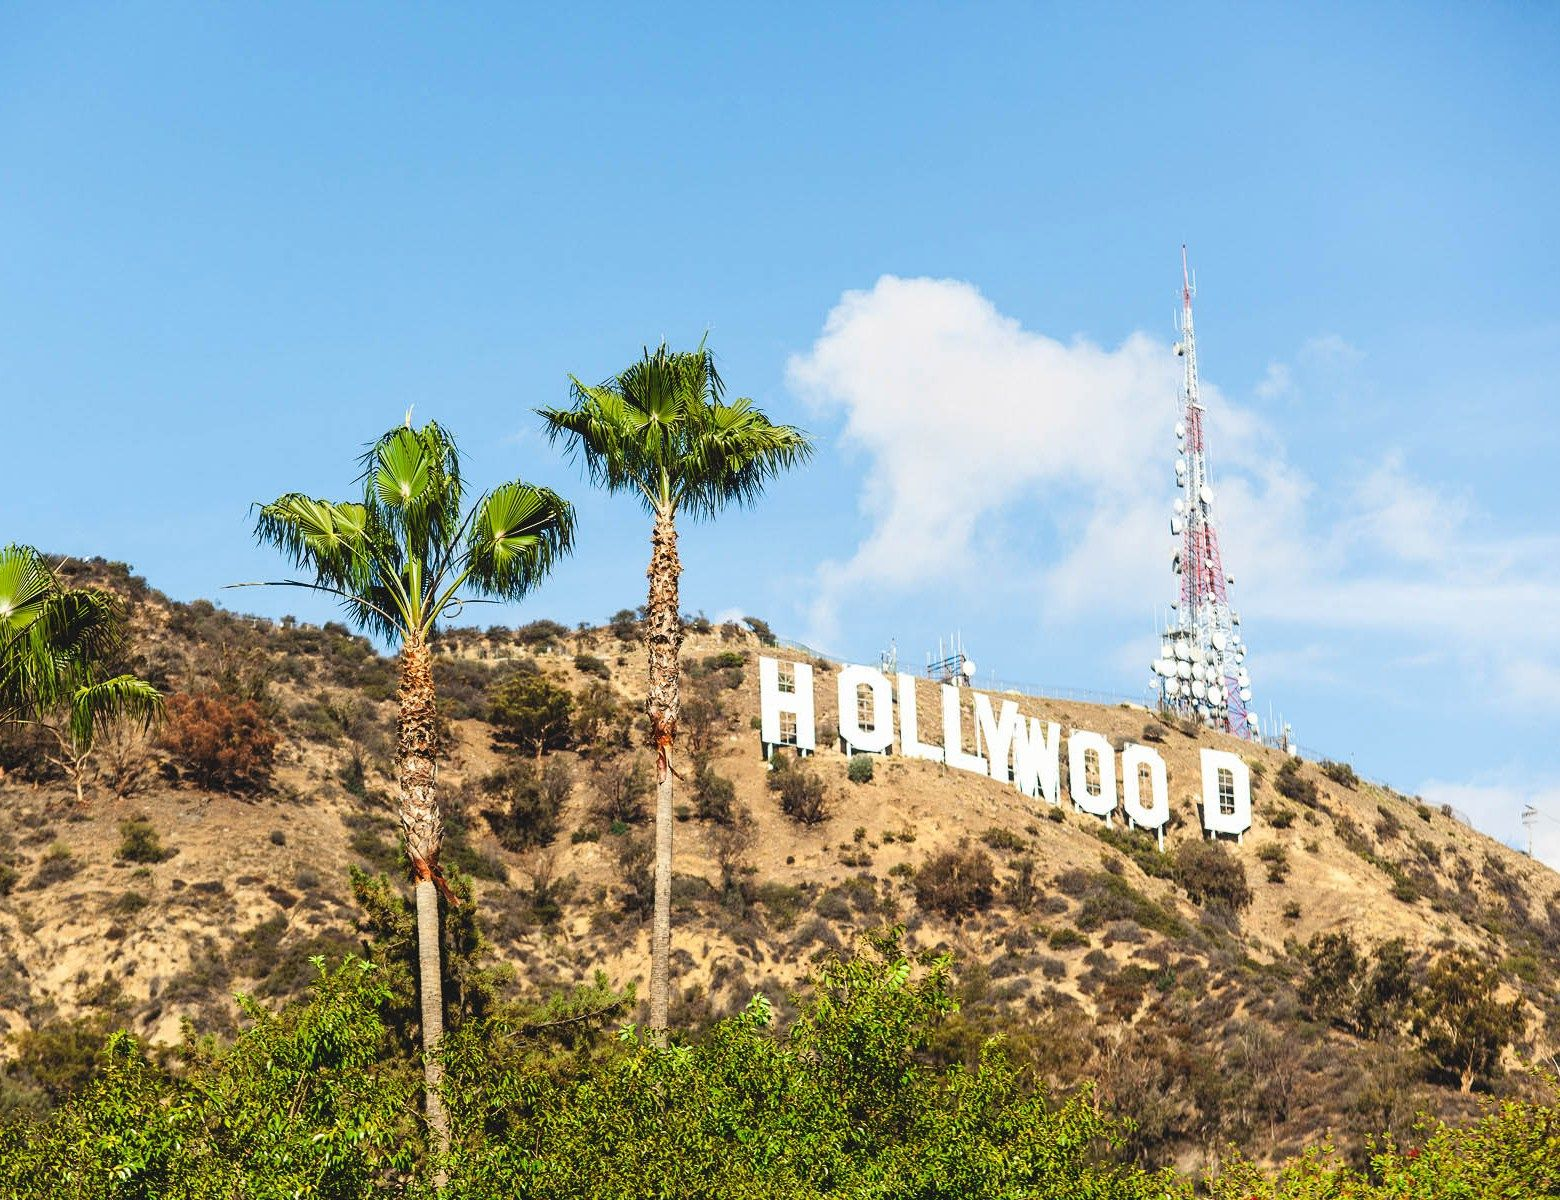 Want to visit LA but short on time? Here's an article about how to two days in LA, highlighting top spots in Hollywood, Beverly Hills, and Santa Monica.